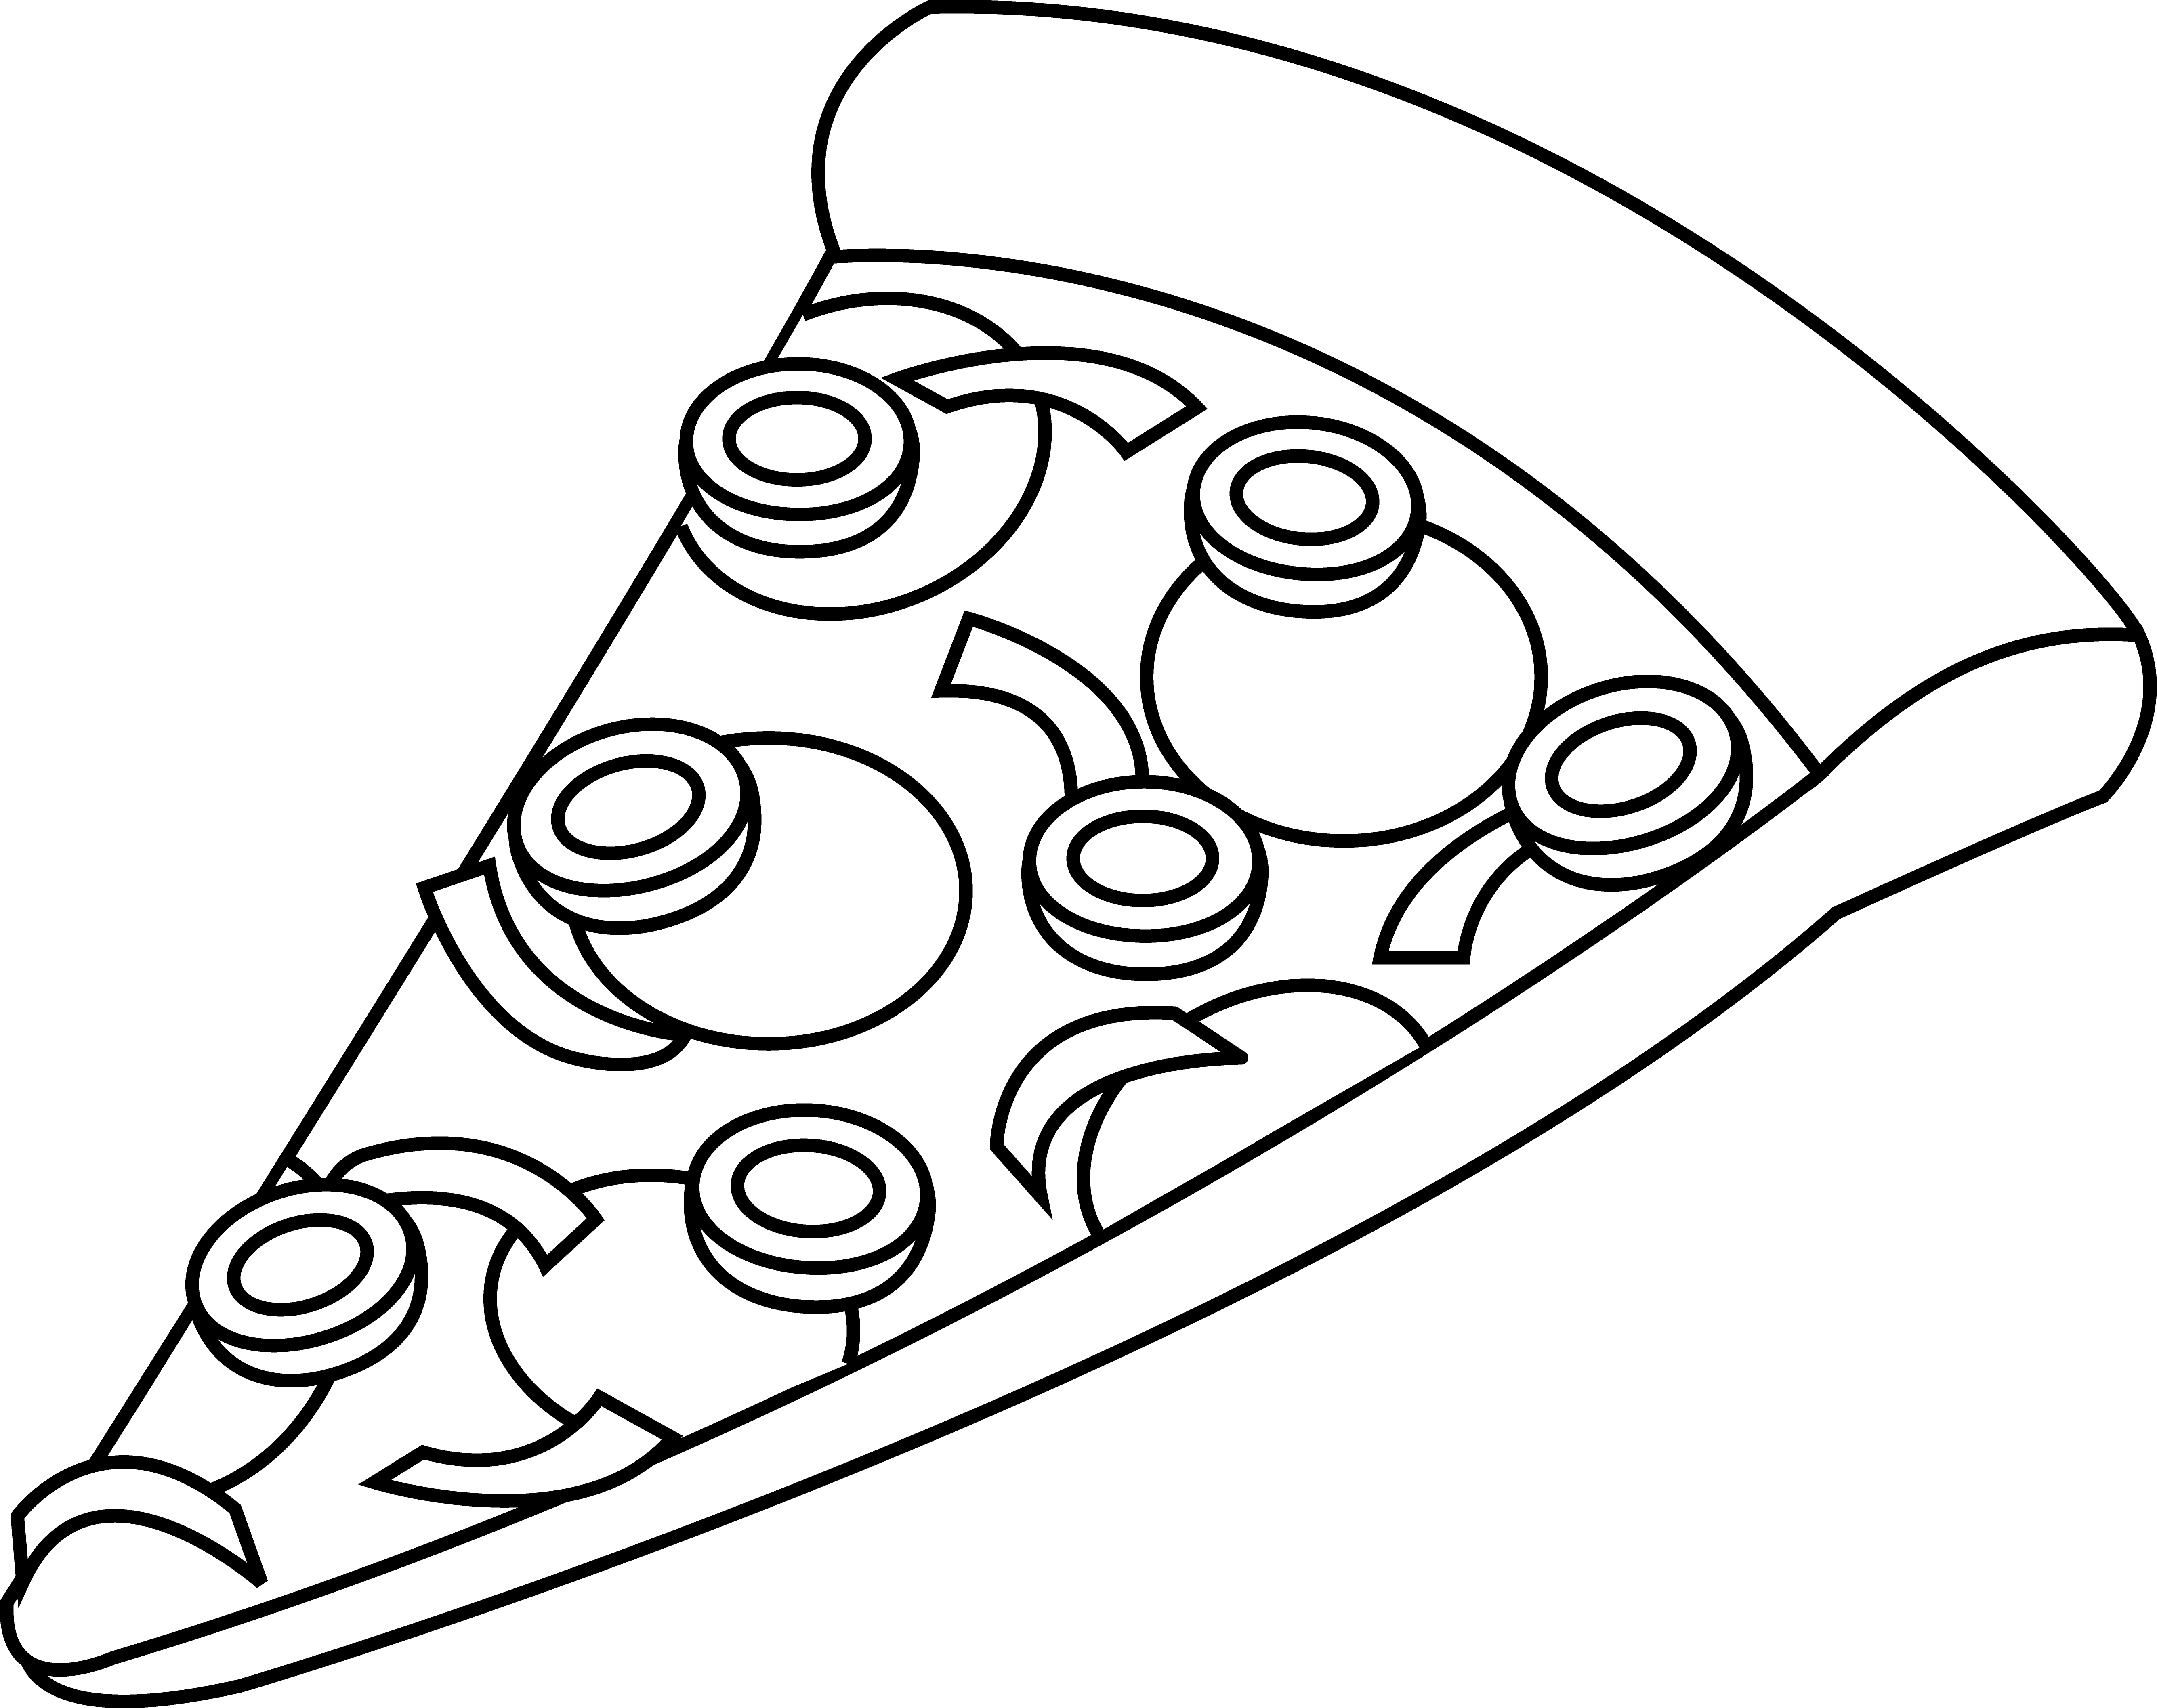 Black And White Pepperoni Pizza Clipart Black And White Pizza Slice